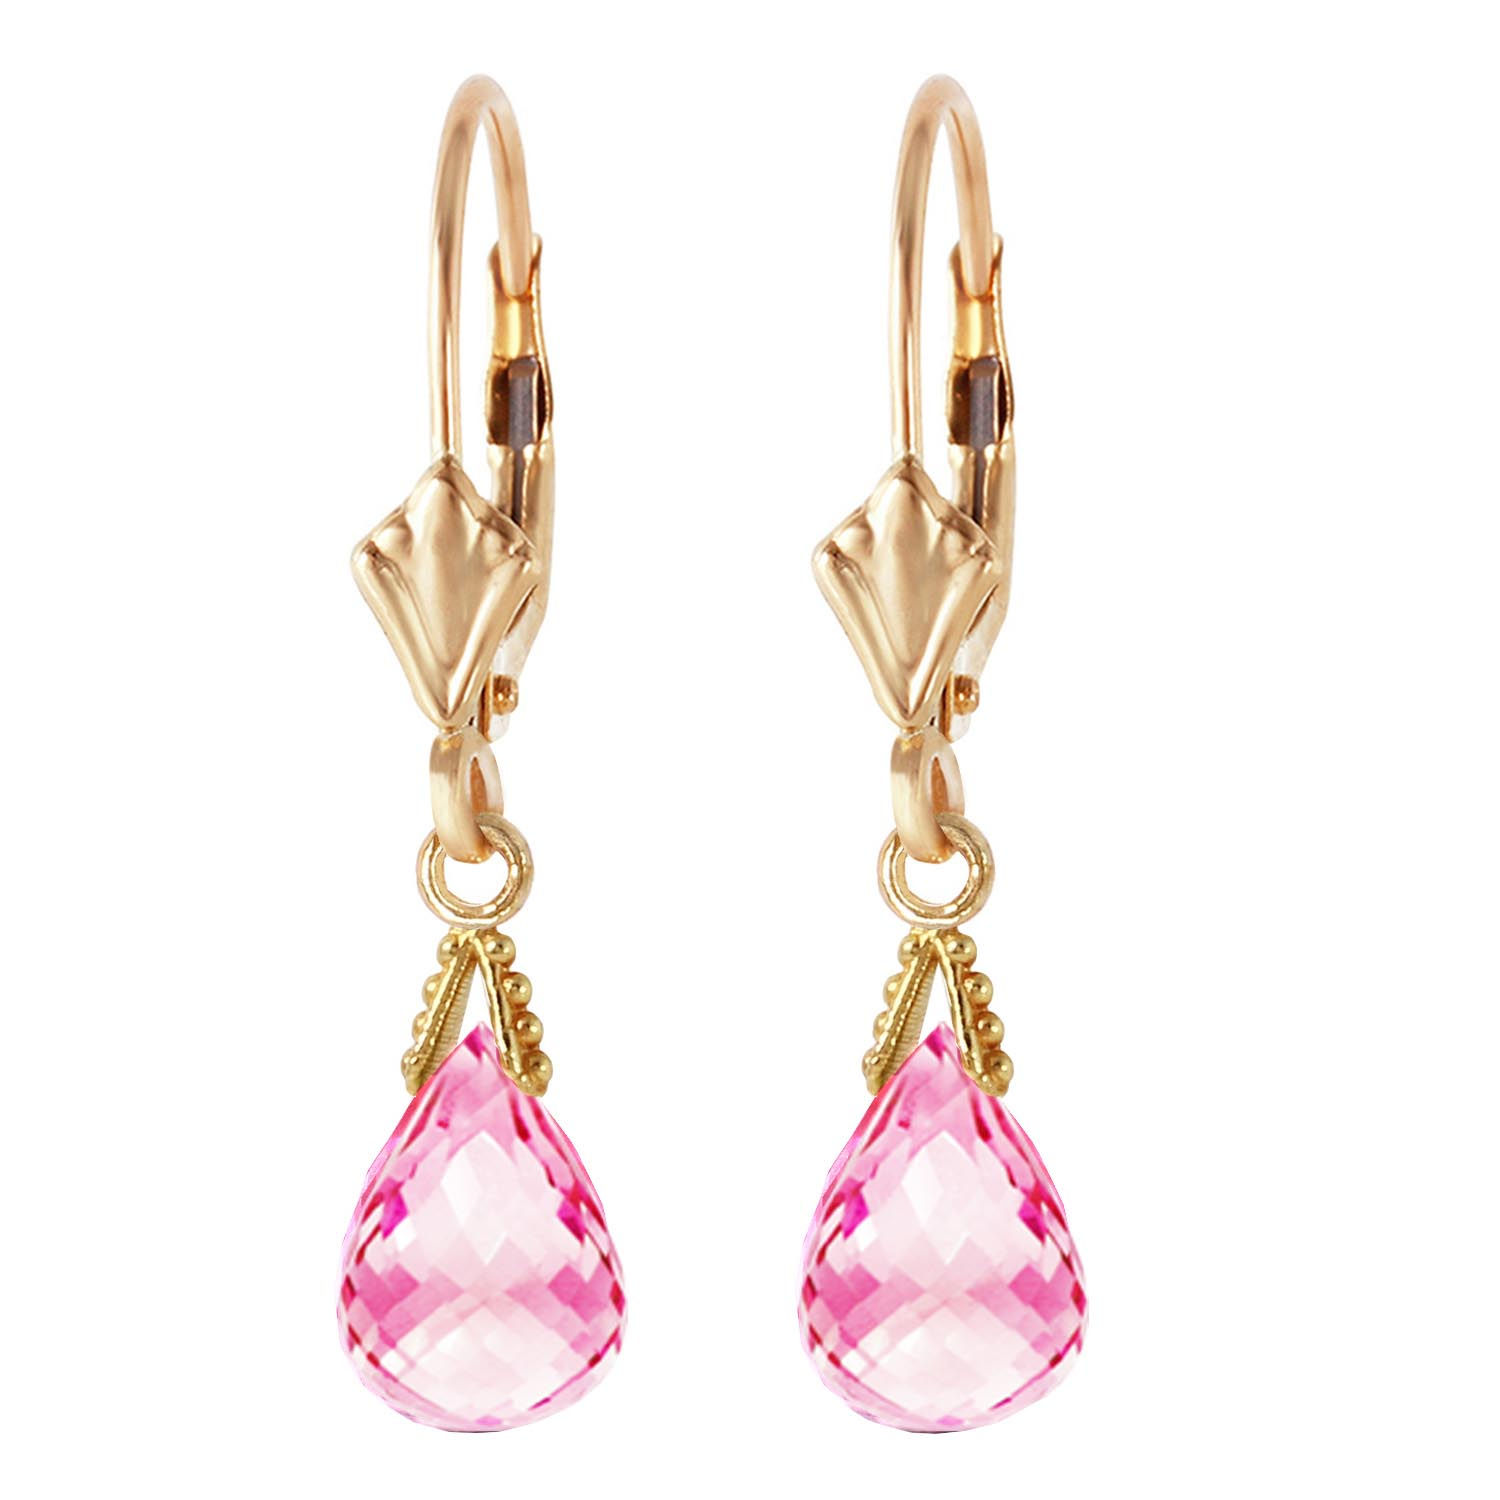 Pink Topaz Droplet Briolette Earrings 4.5ctw in 14K Gold